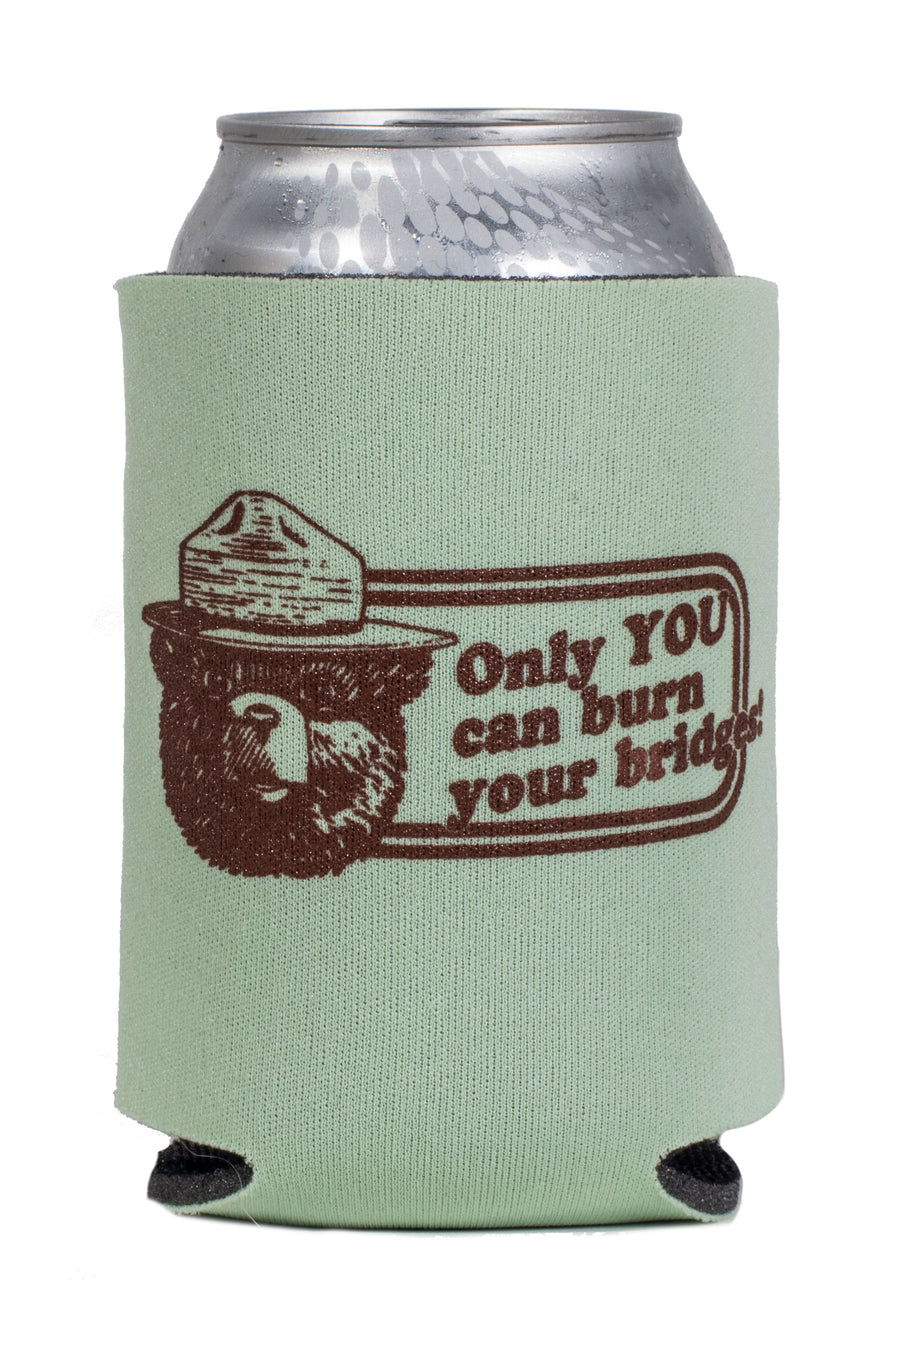 Only YOU Can Burn Your Bridges! Koozie